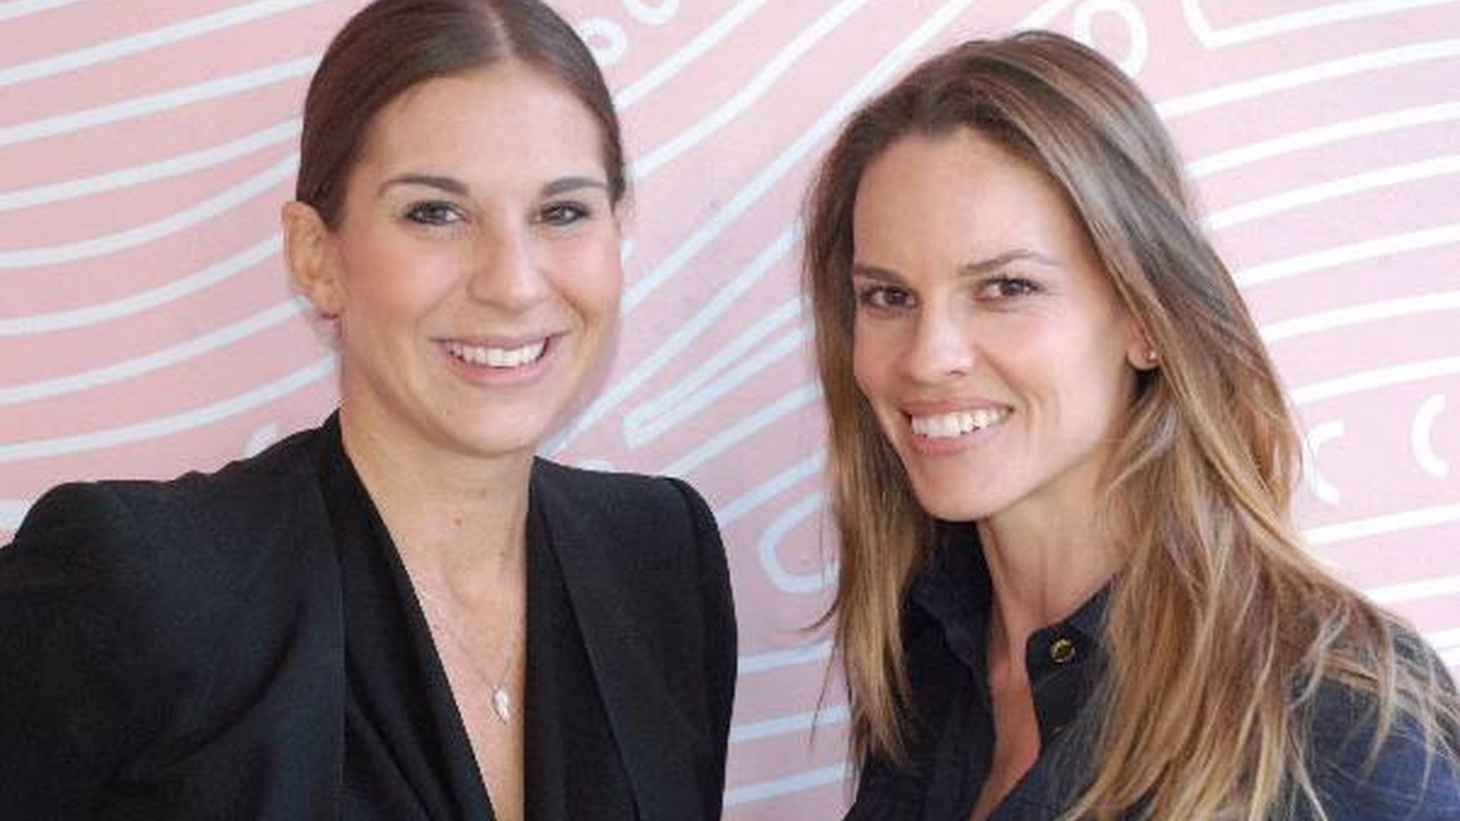 We talk with two veteran casting executives about casting TV shows. Then, Oscar-winning actress Hilary Swank and Molly Smith talk about their new production company.